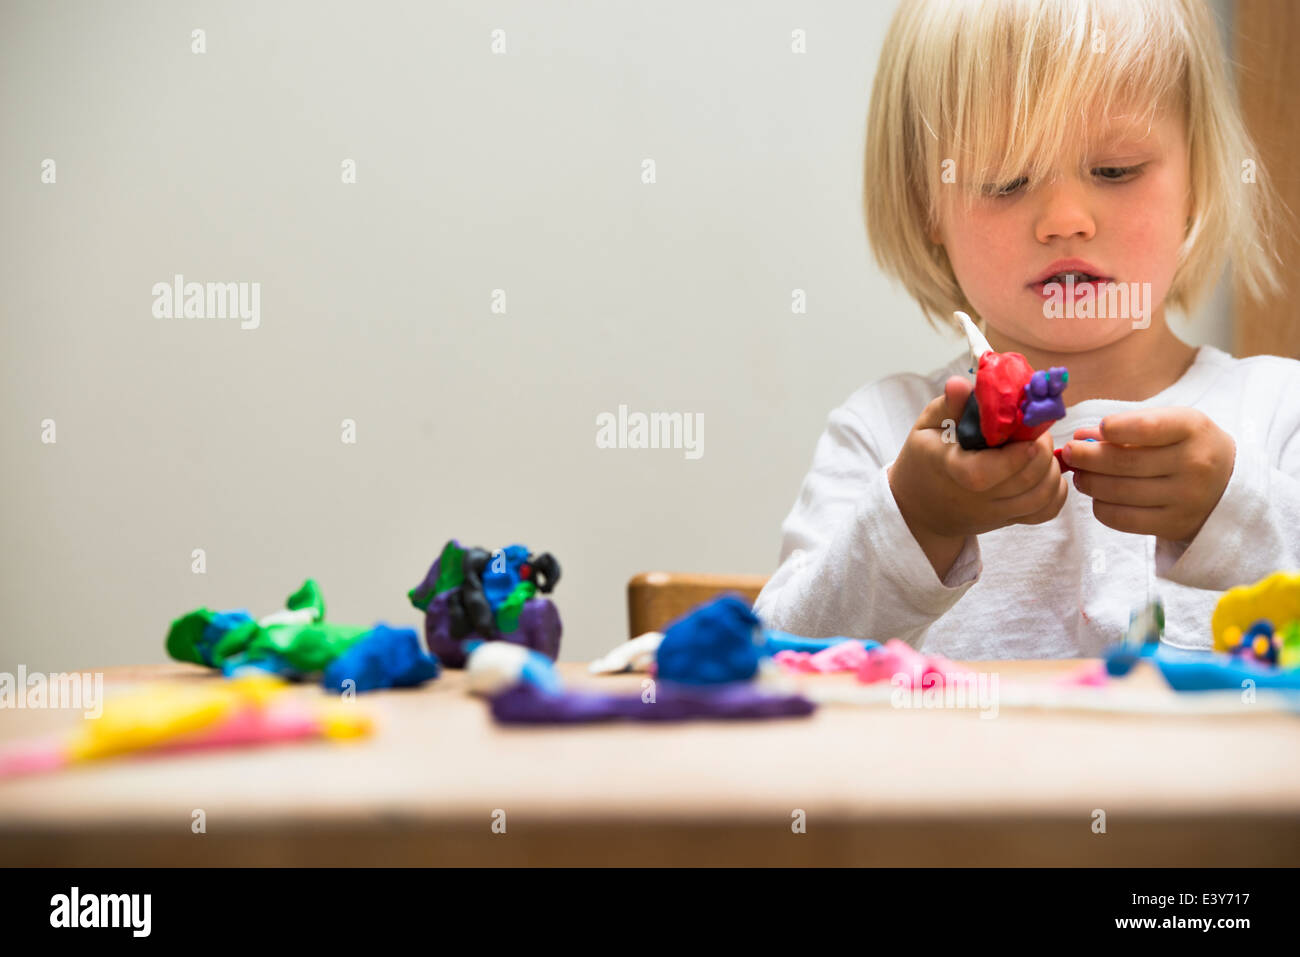 Three year old boy playing with modeling clay - Stock Image